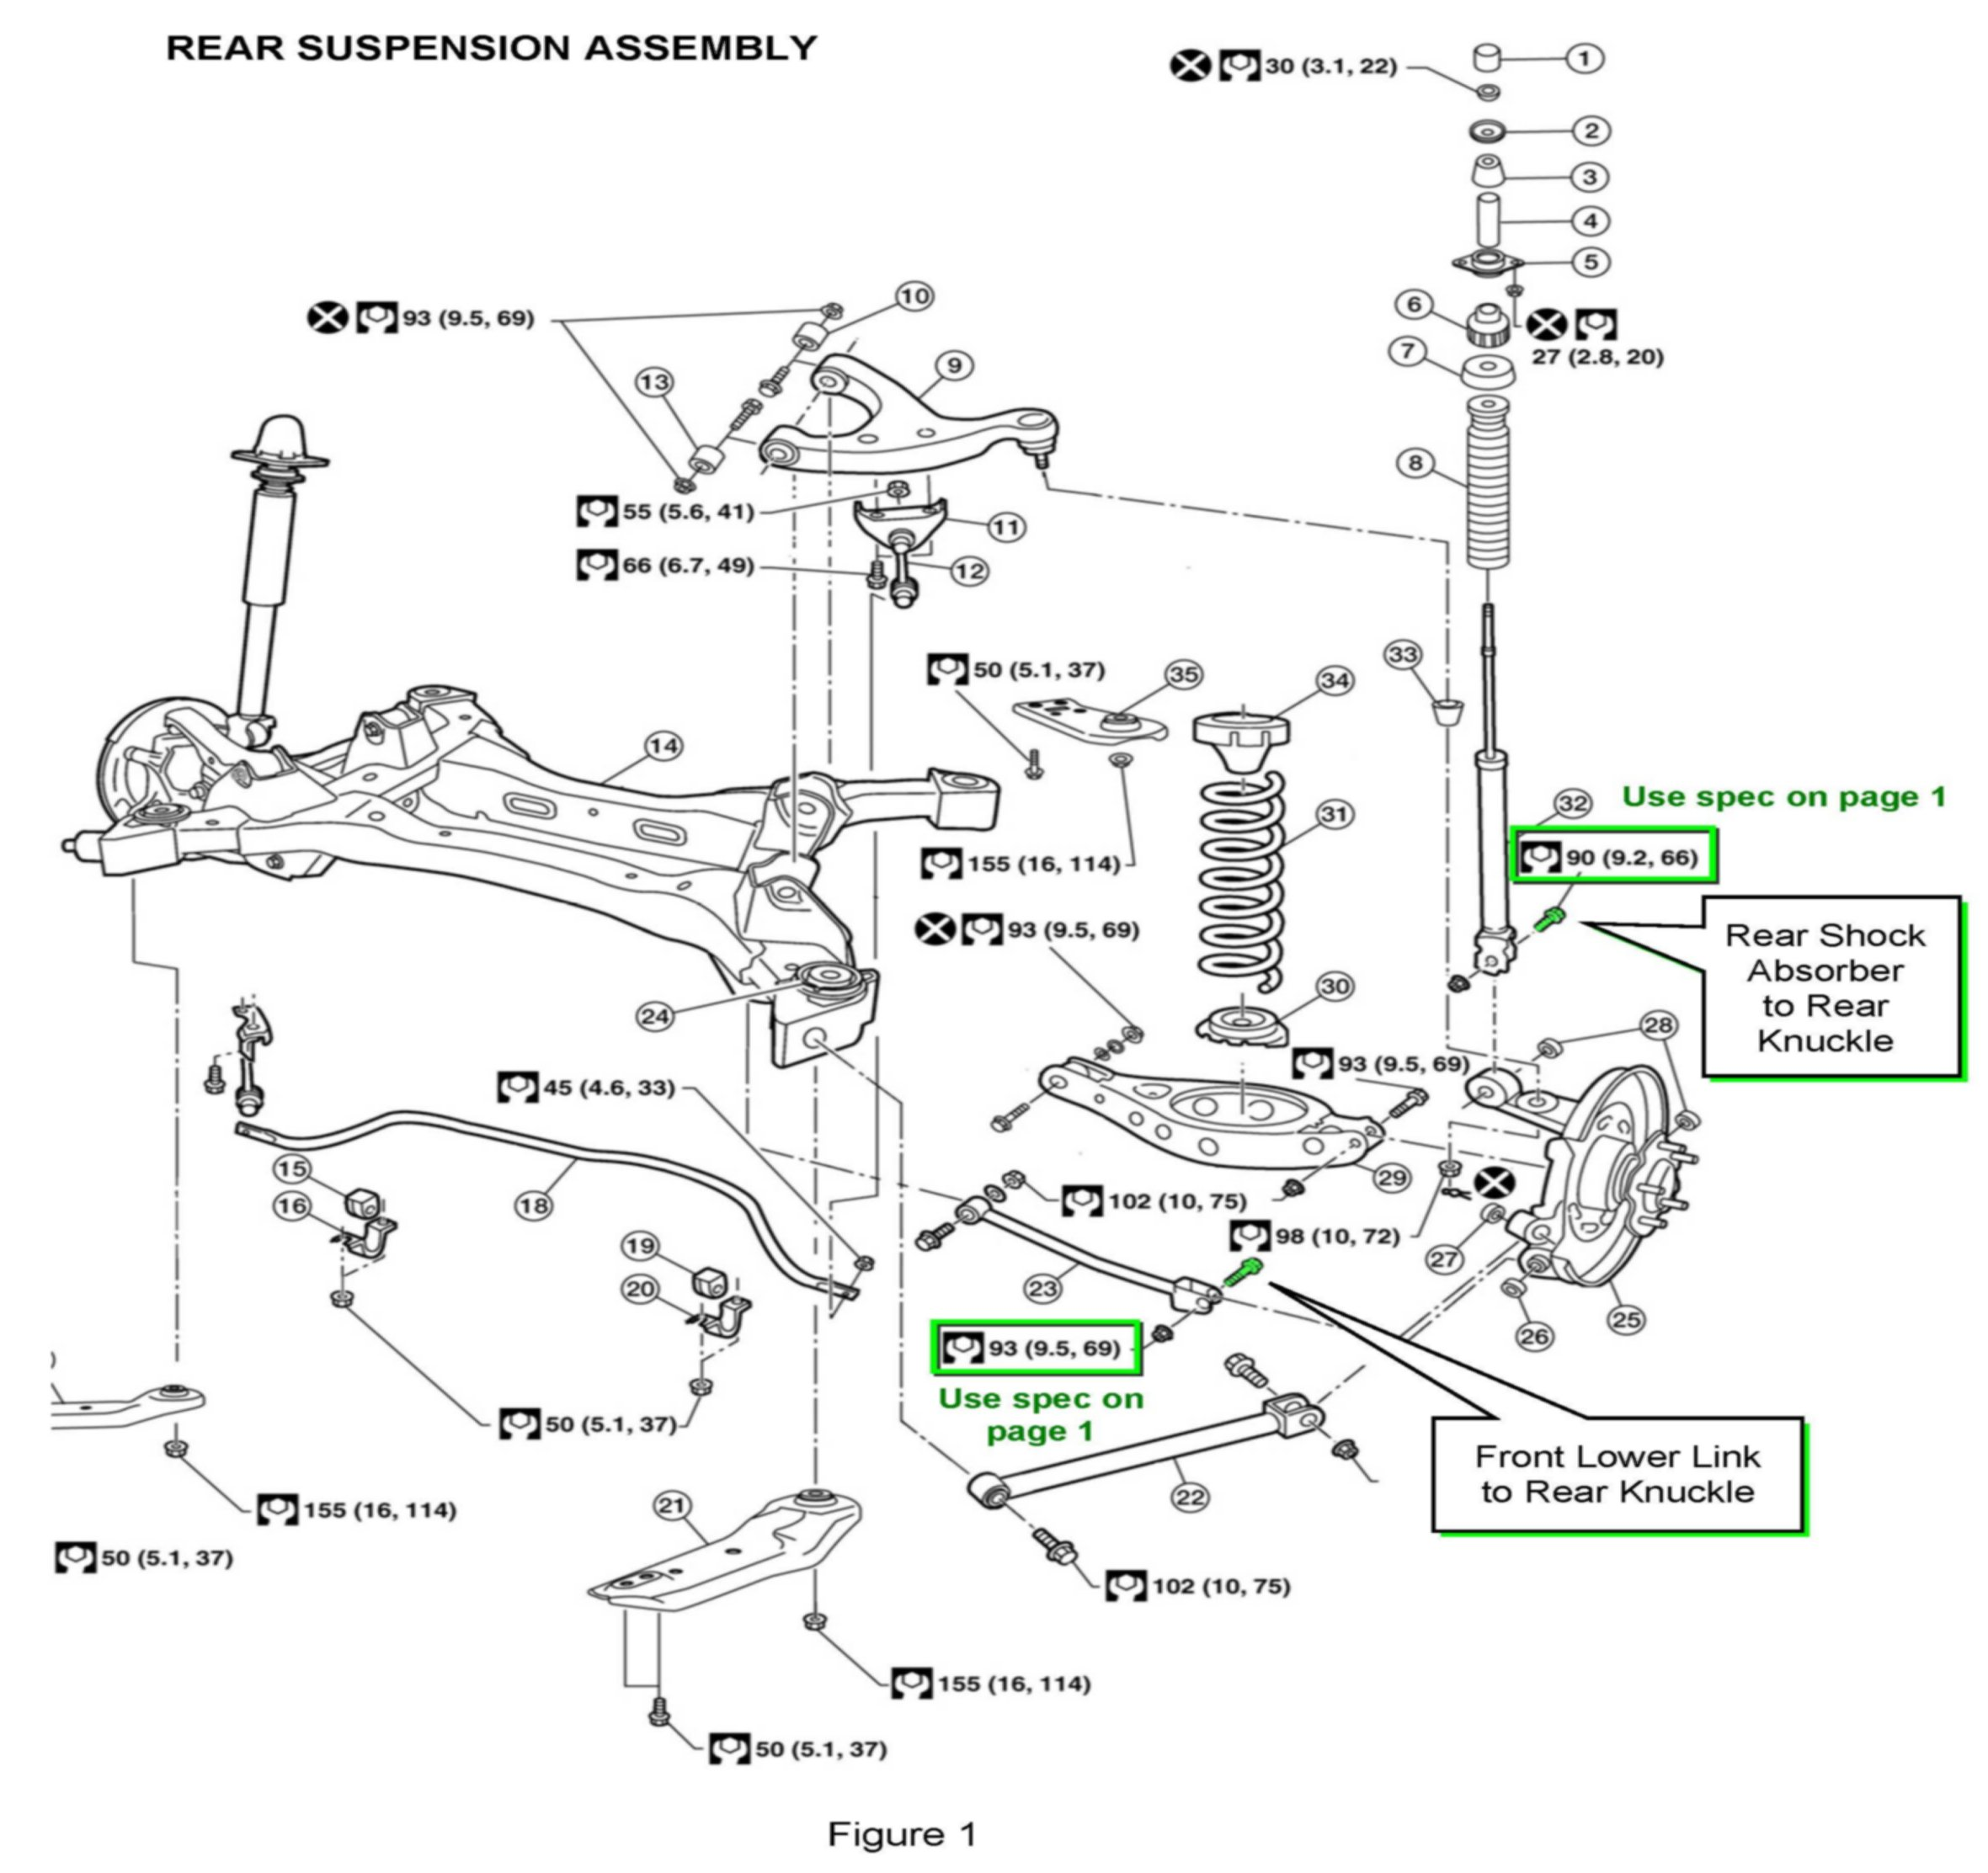 93 nissan pickup engine diagram 93 ford tempo engine